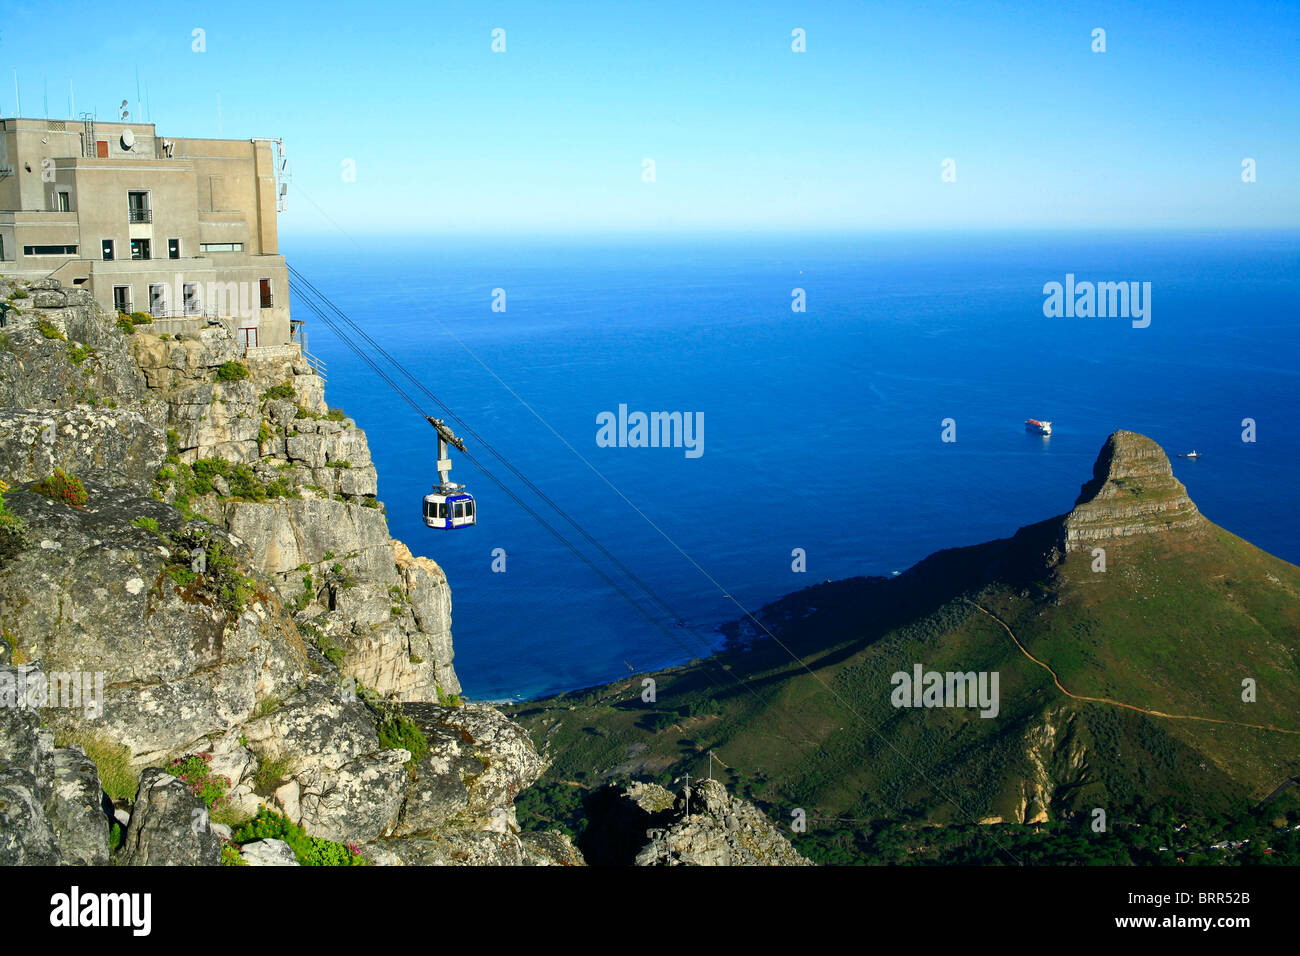 Table Mountain cableway, with Atlantic Ocean and Lions Head in background - Stock Image